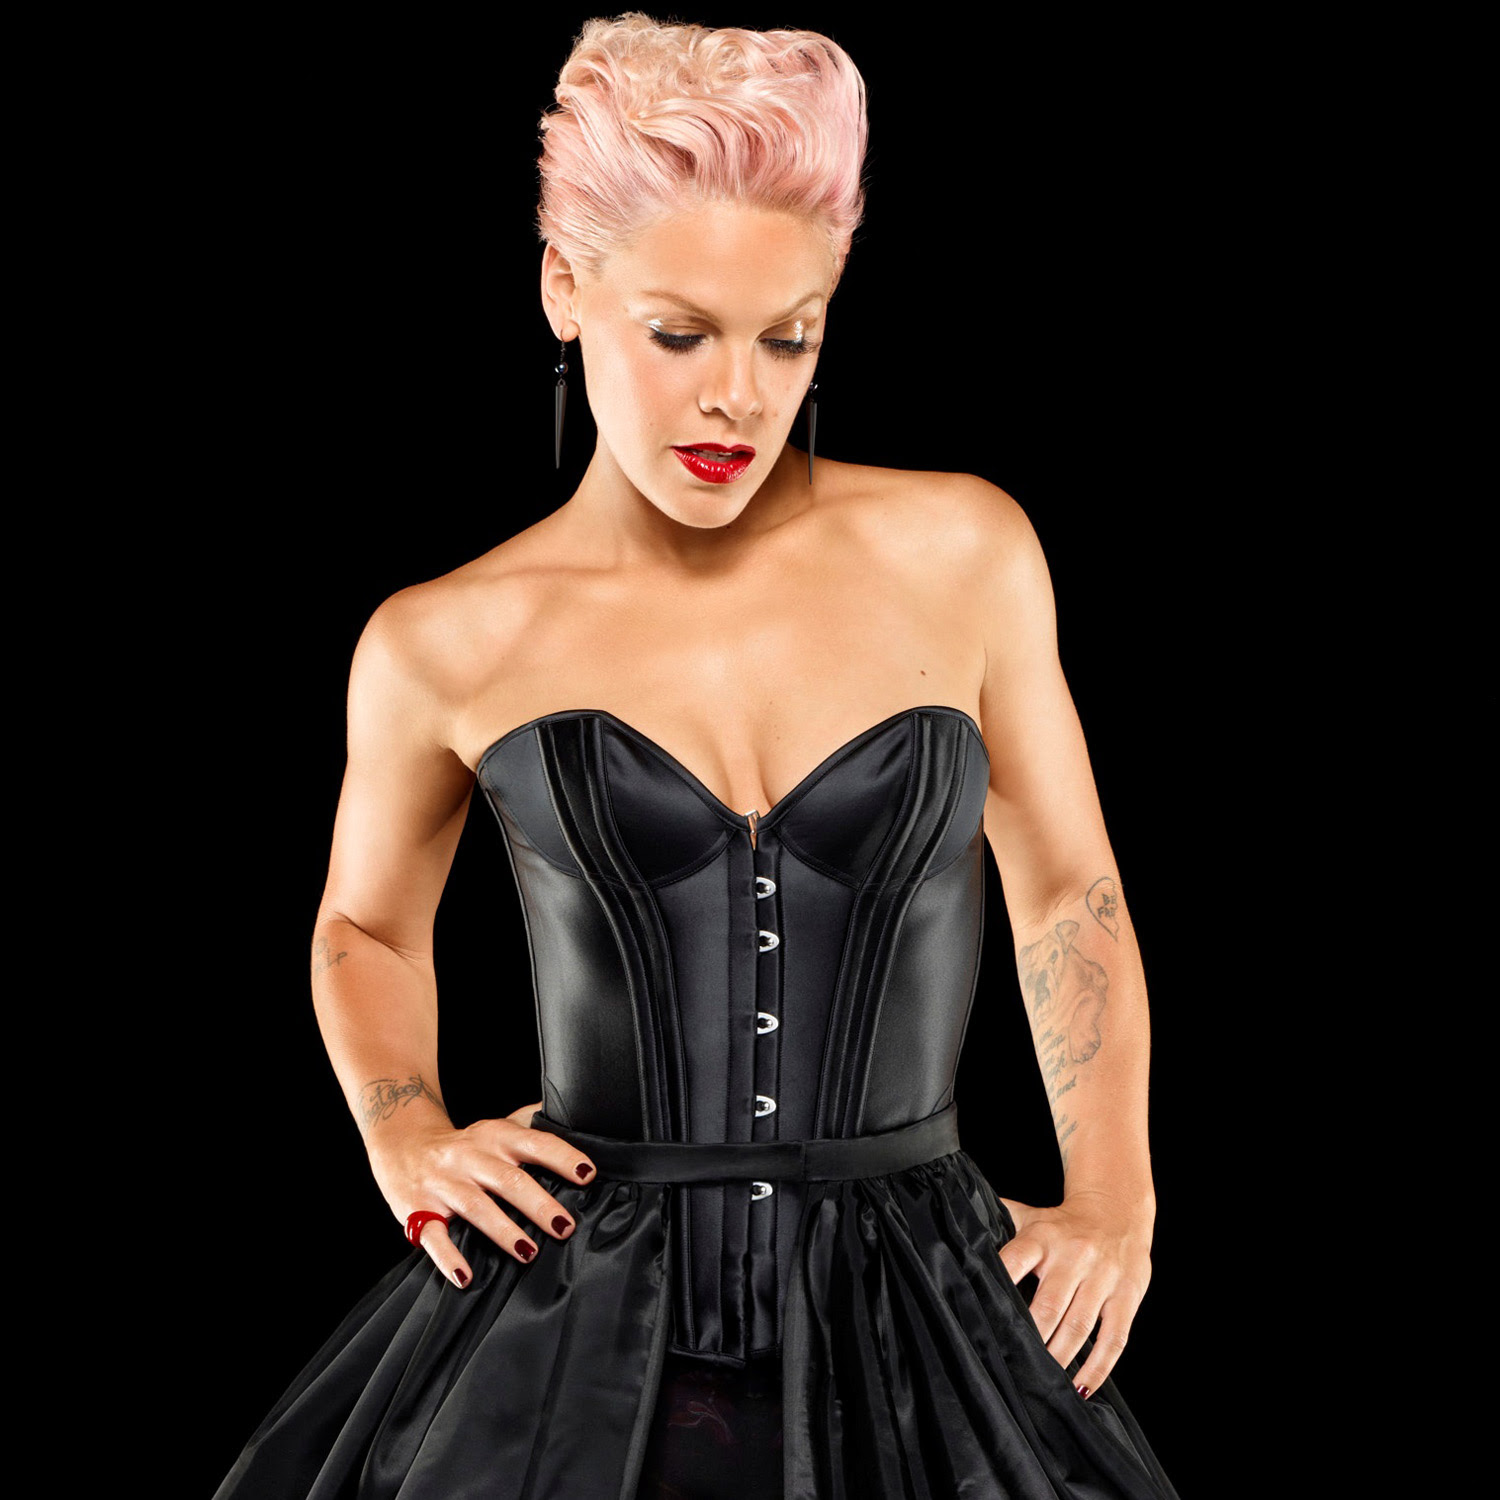 P!nk - Pink Photo (33496353) - Fanpop